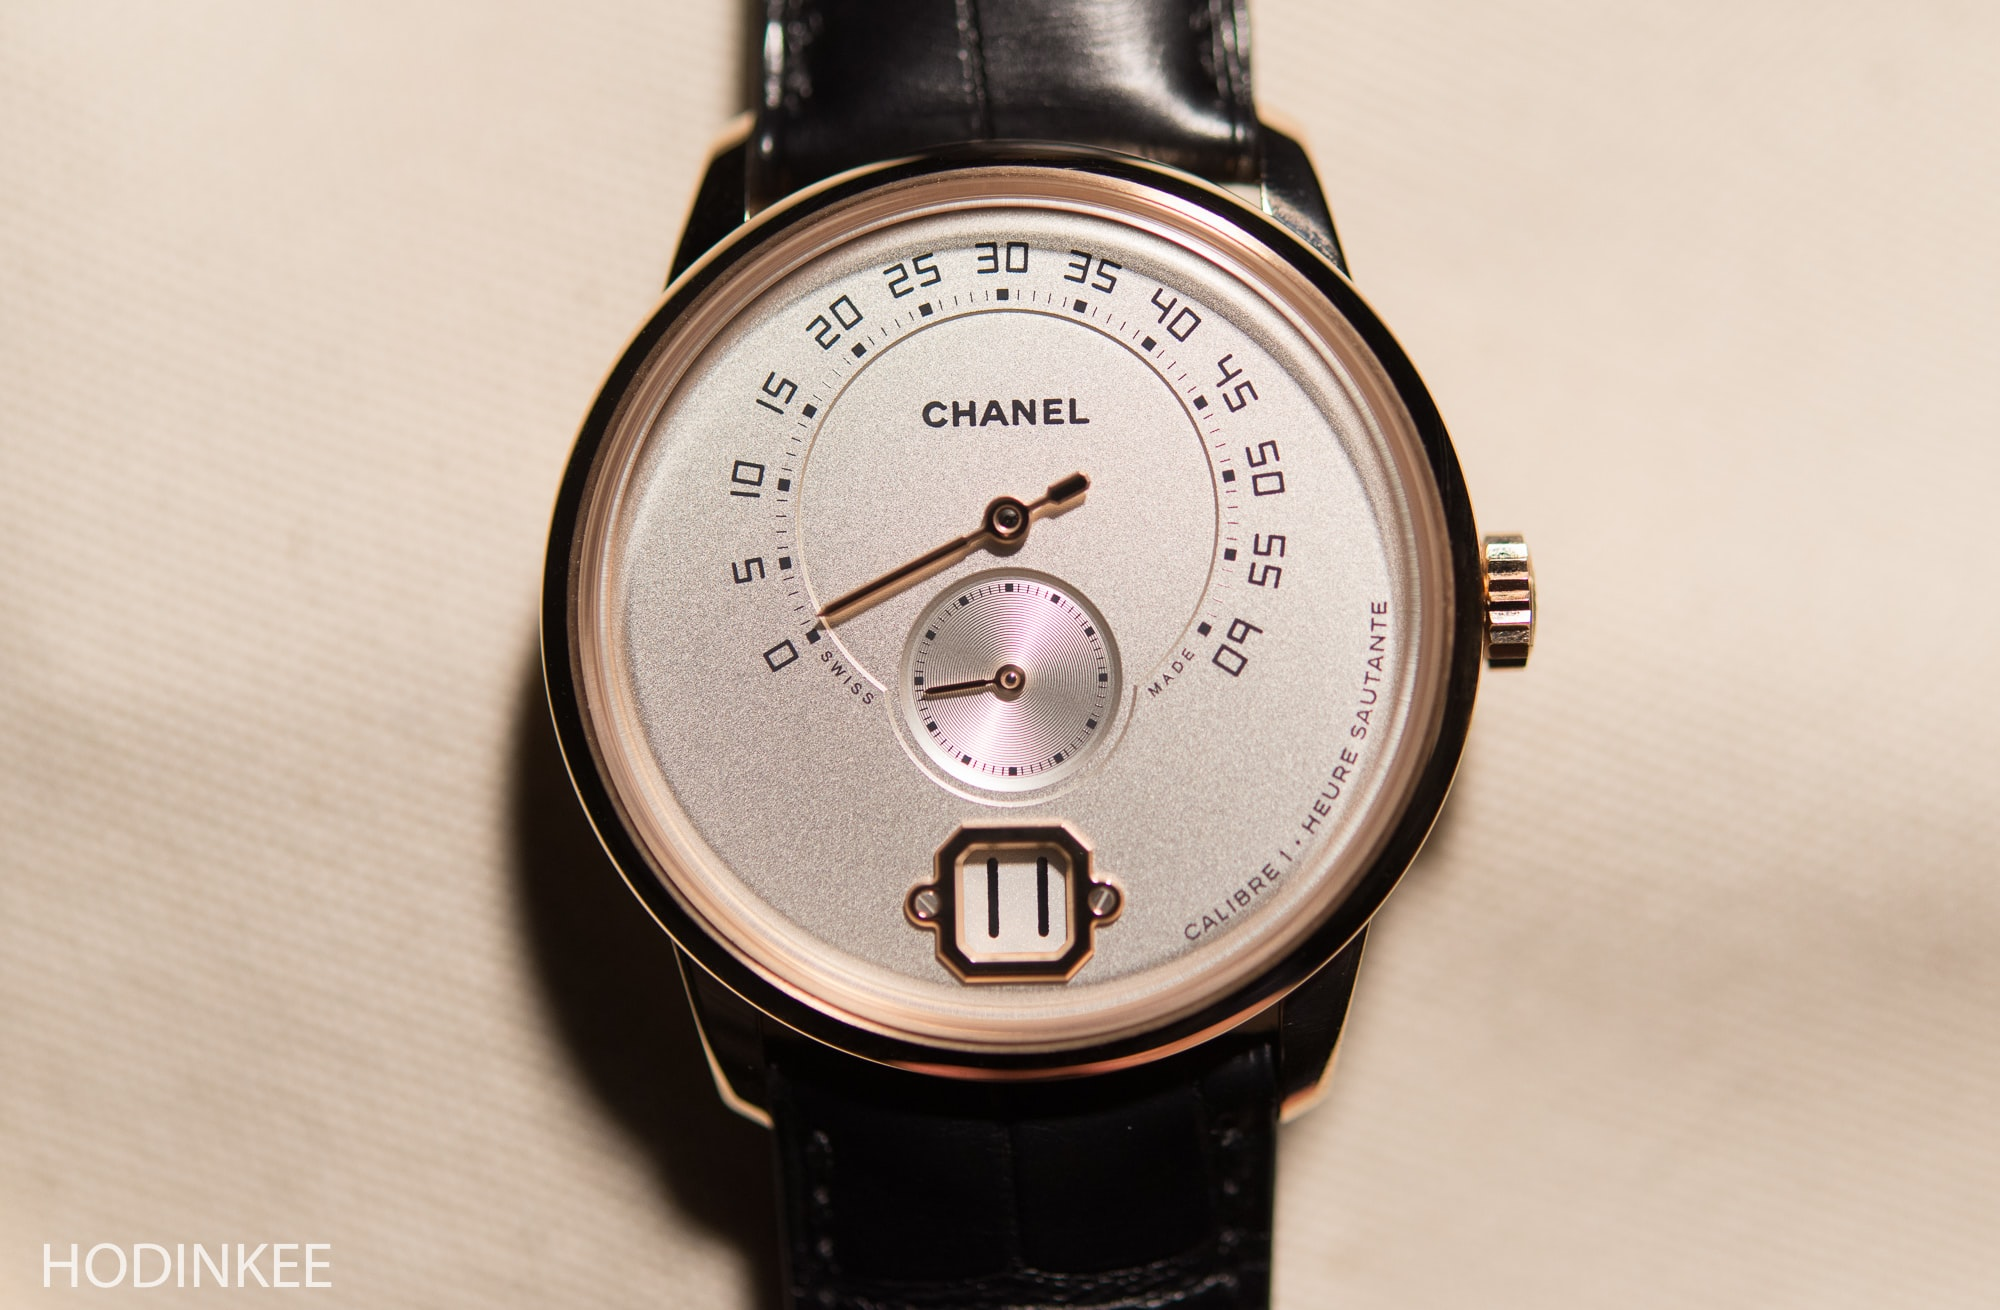 Monsieur de chanel watch Introducing: The Monsieur de Chanel: Chanel's First Dedicated Men's Watch, And It's Completely In-House And VERY Impressive Introducing: The Monsieur de Chanel: Chanel's First Dedicated Men's Watch, And It's Completely In-House And VERY Impressive MonsieurdeChanelwatch 5